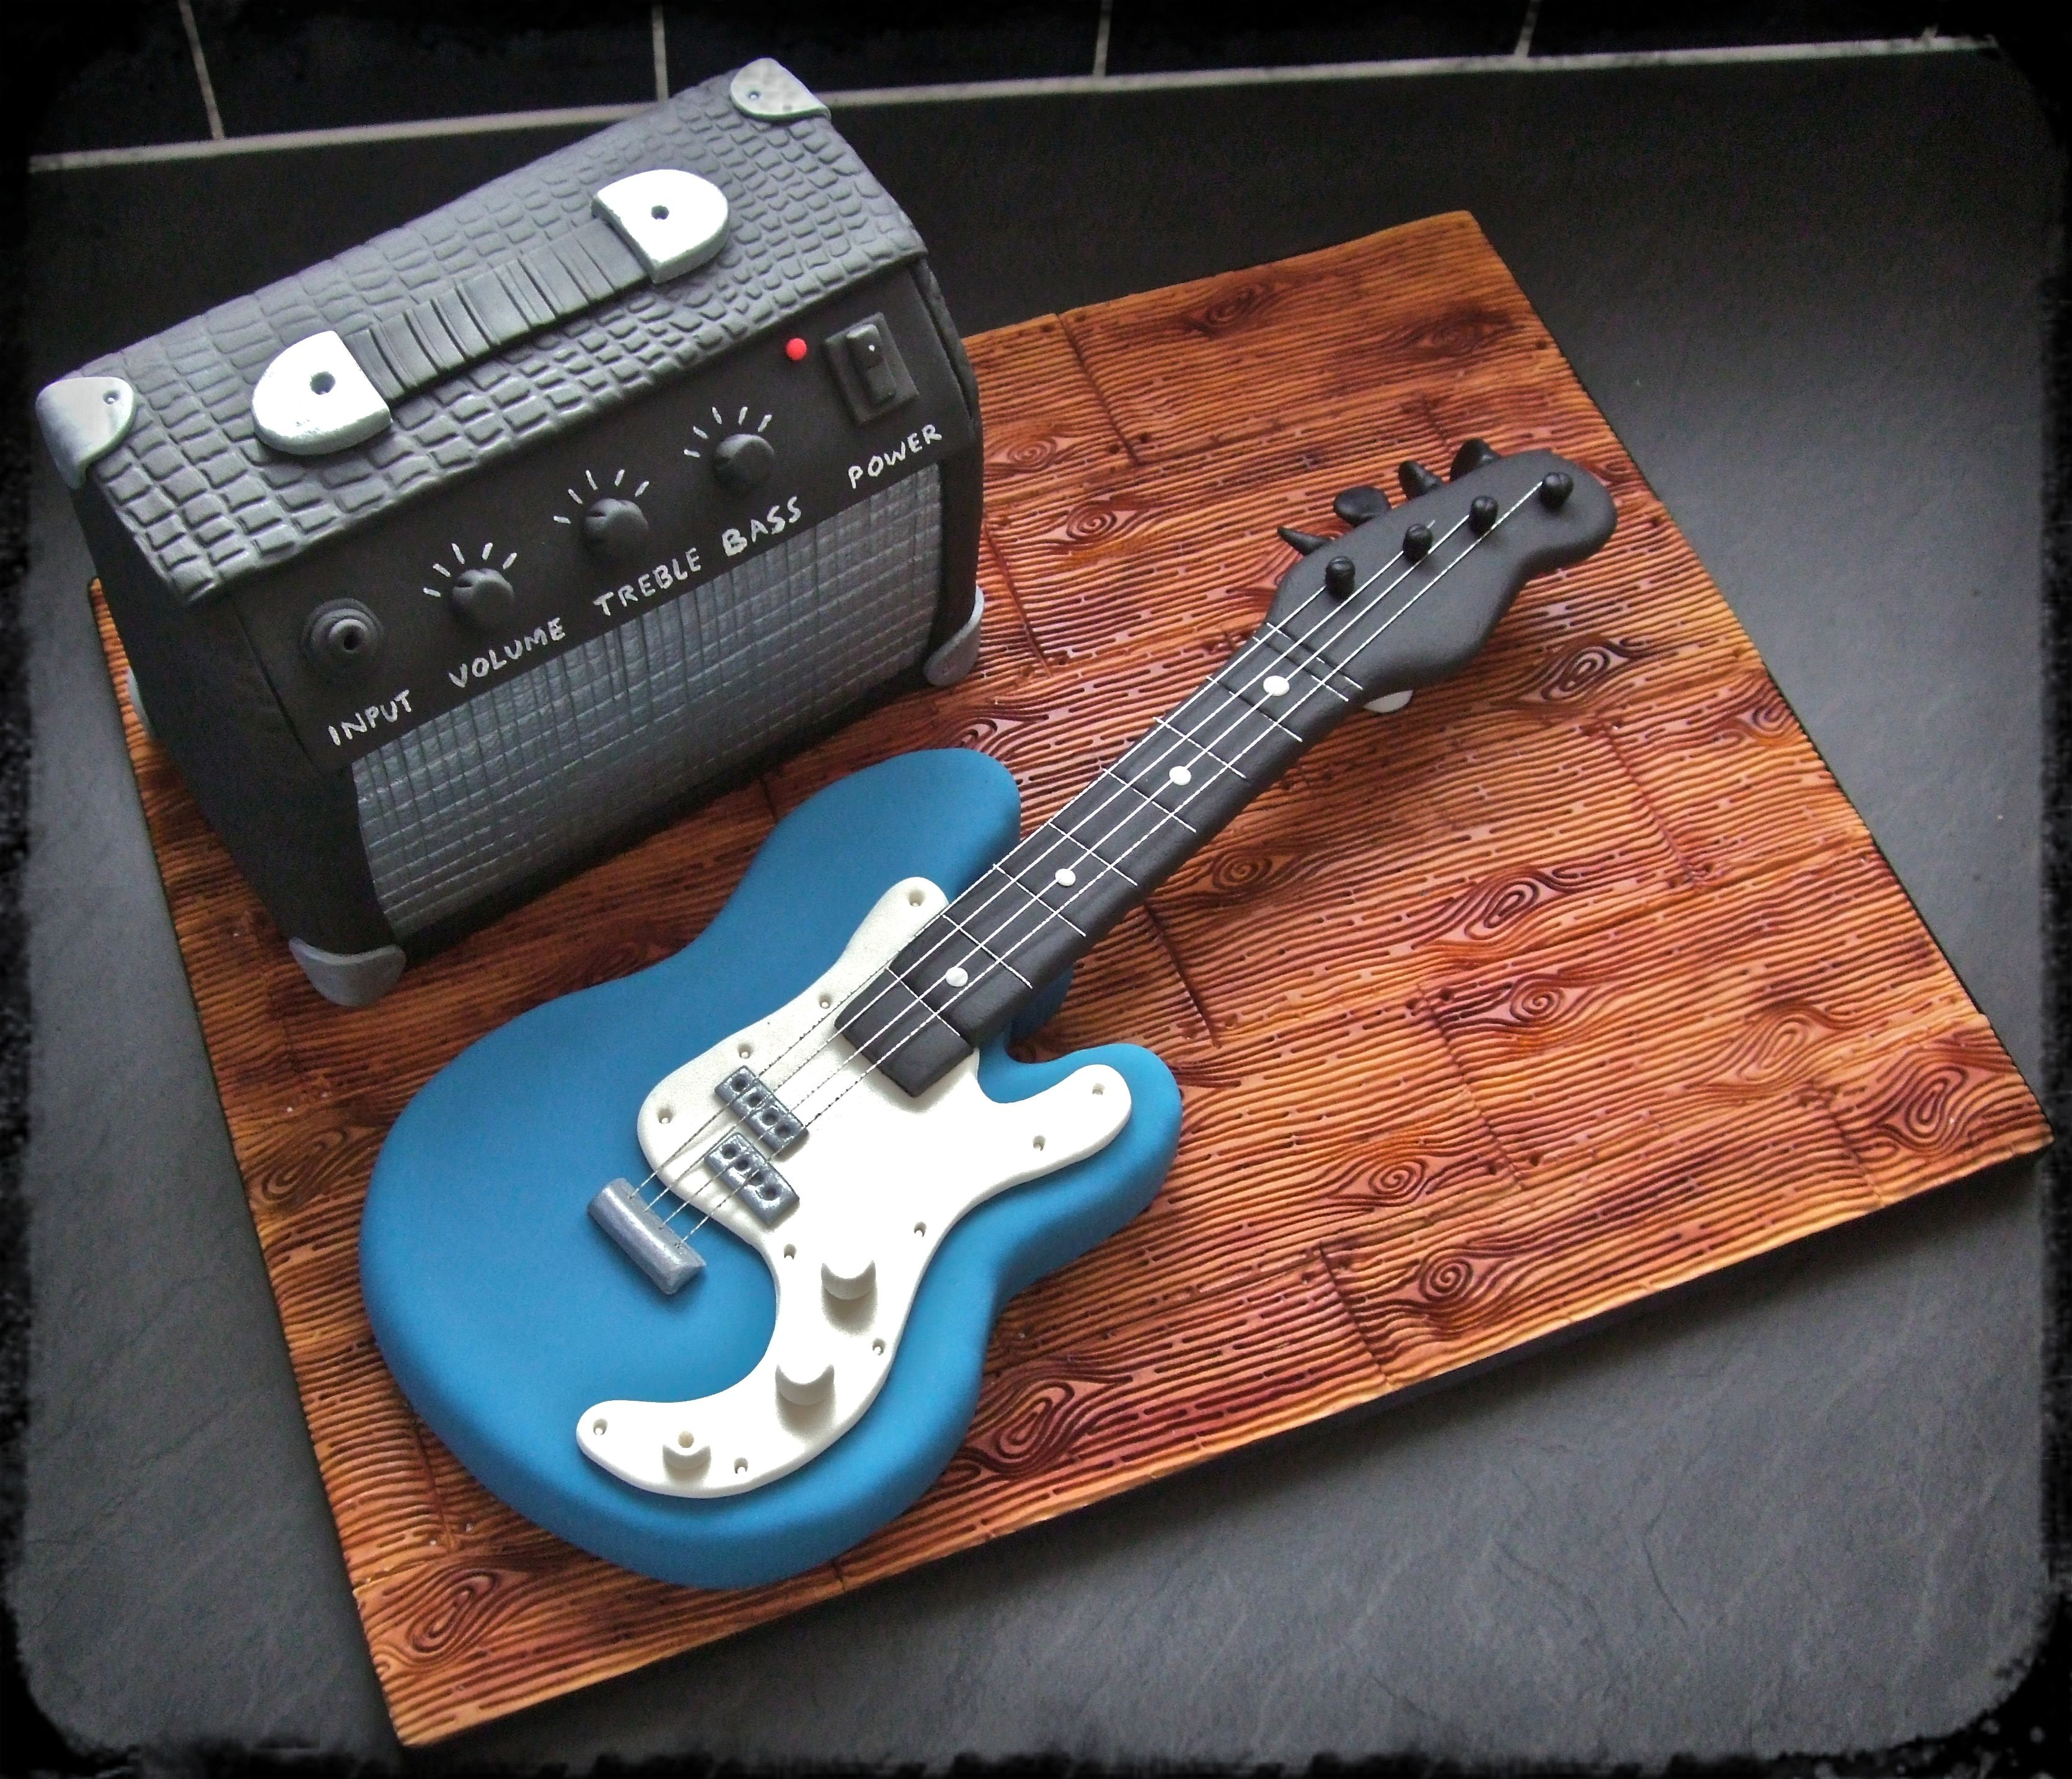 Birthday Cakes - Guitar And Amp Cake